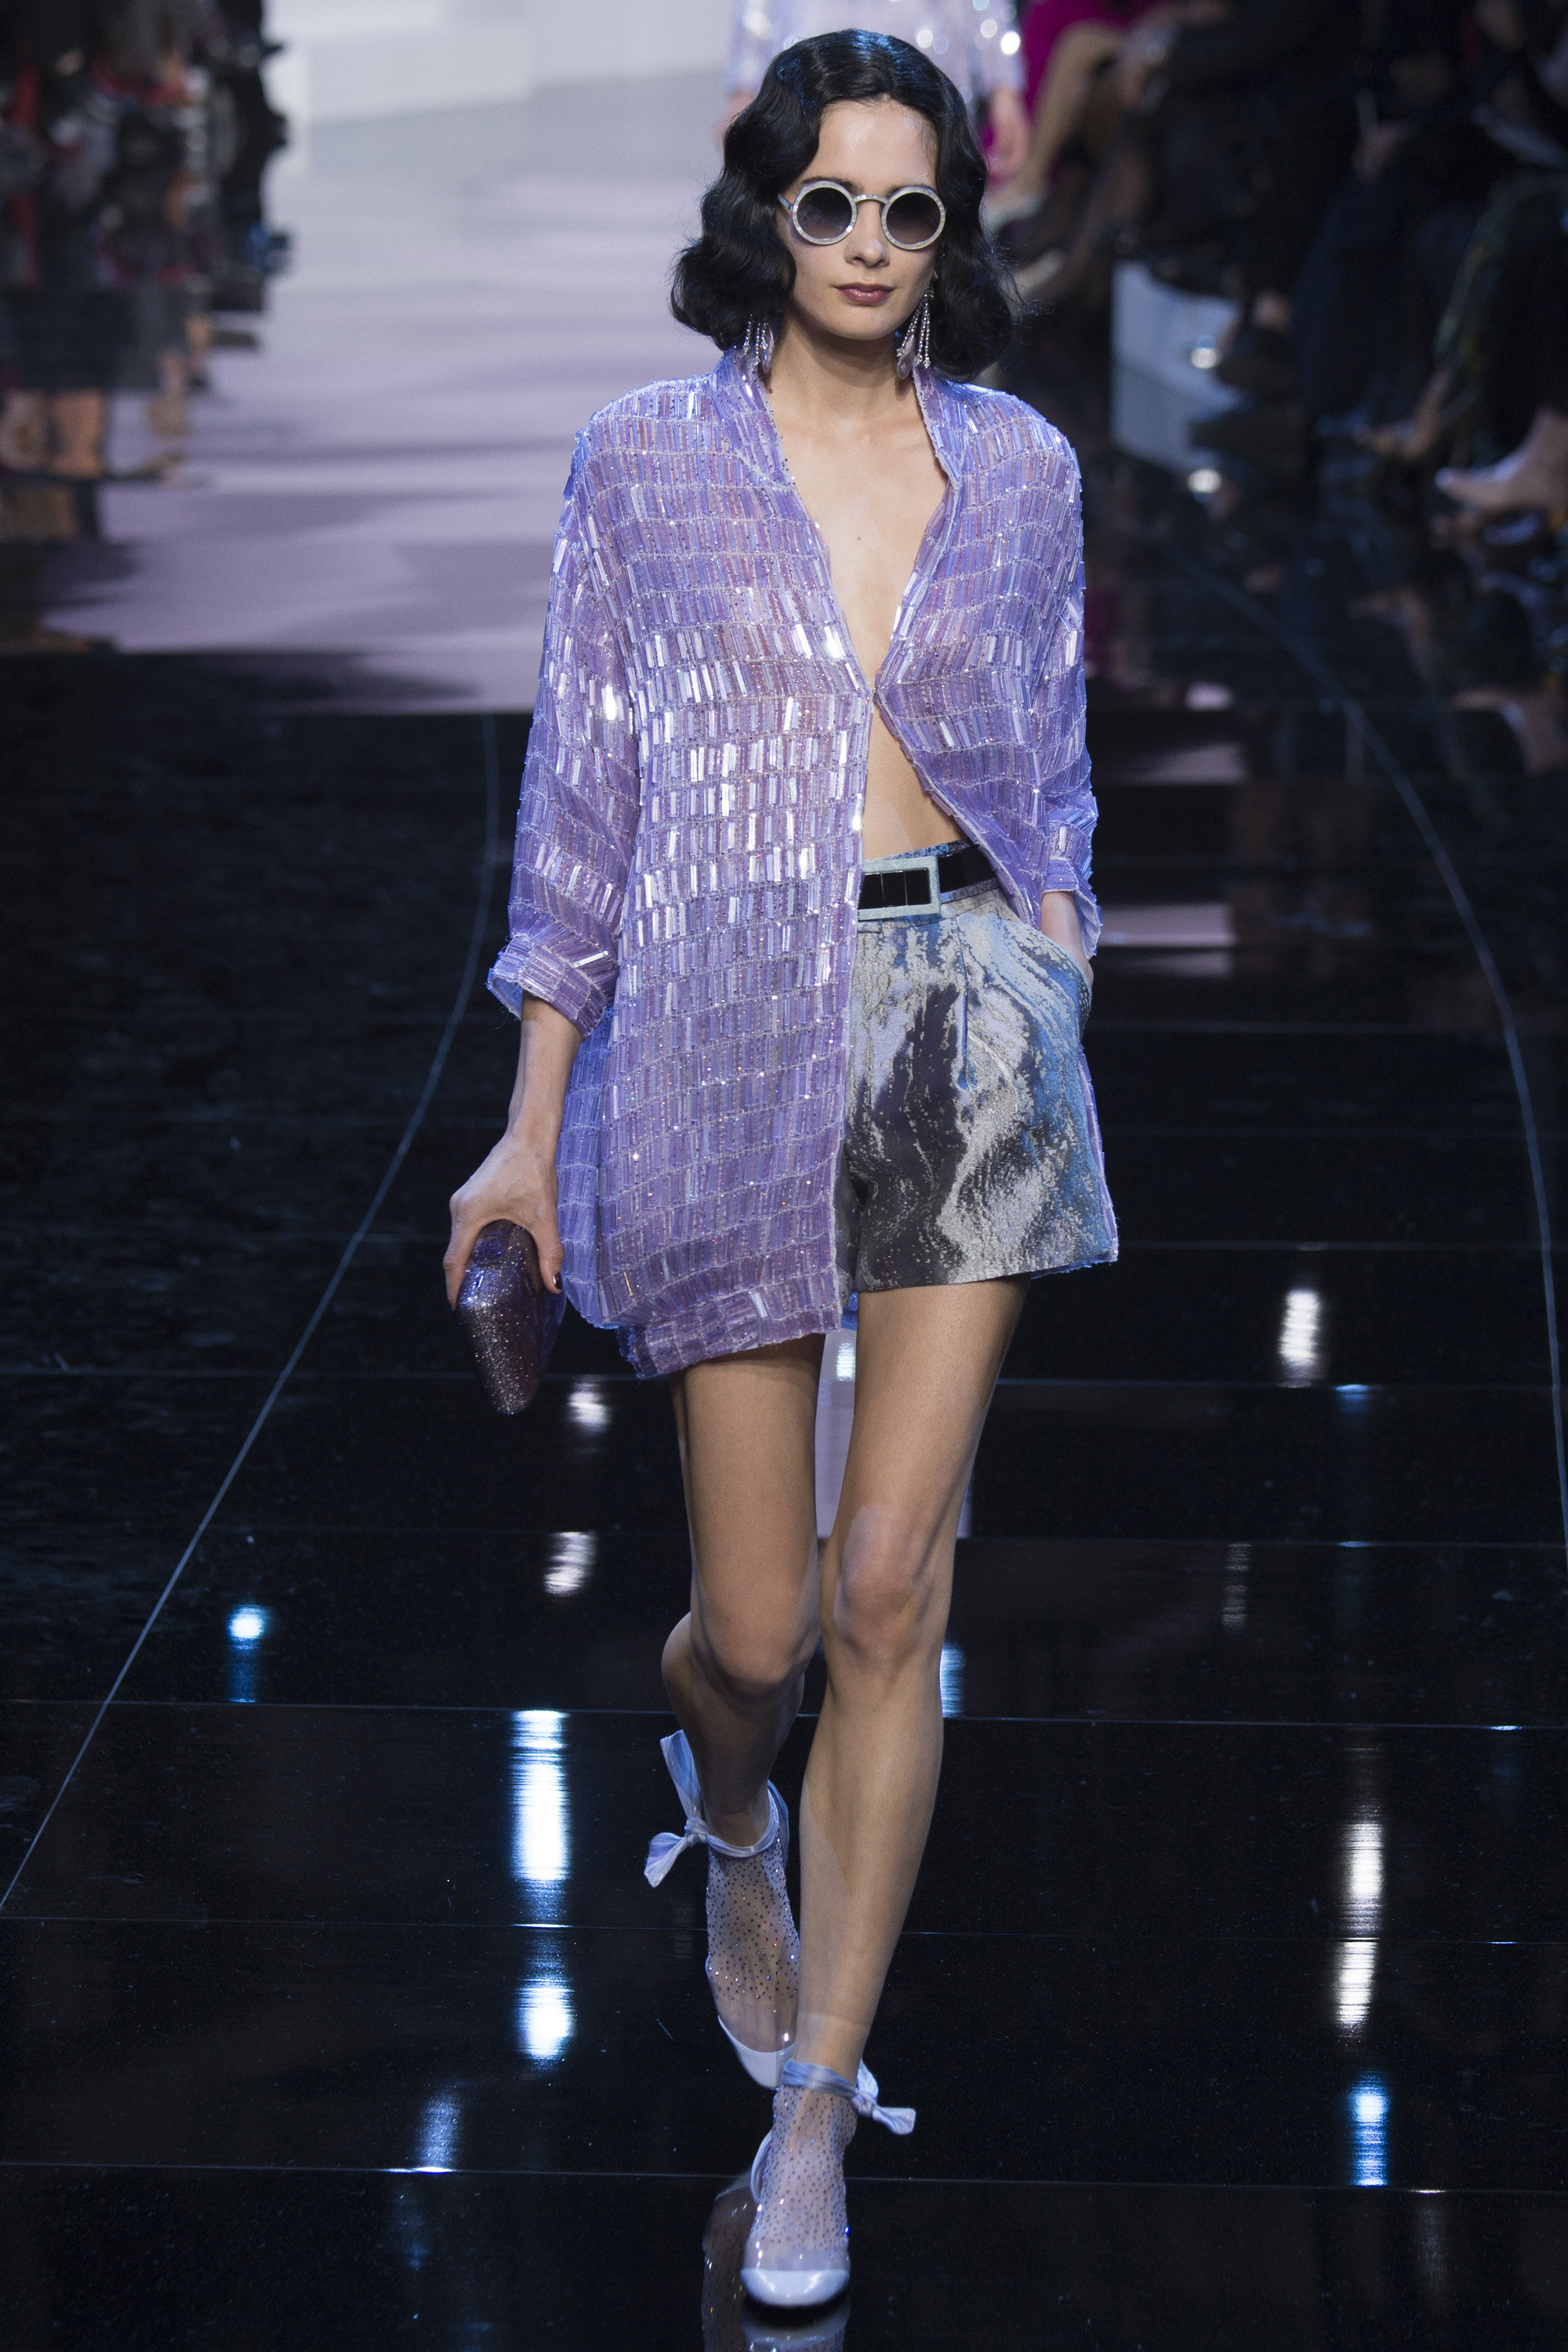 Armani-Prive-Couture-Spring-2016-13.jpg